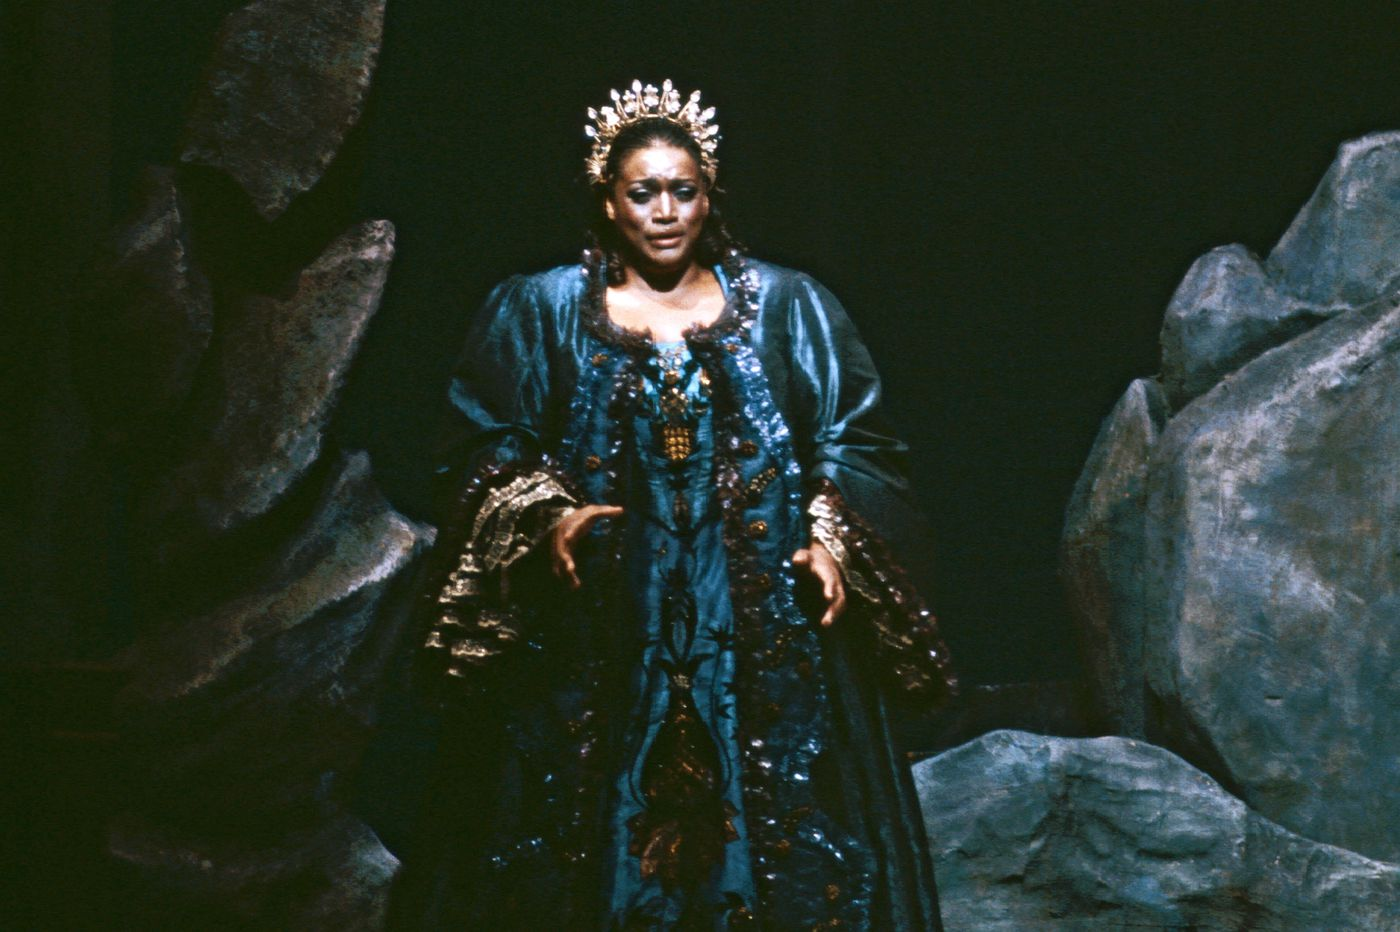 Jessye Norman was a superstar globally, but Philadelphia gave her an American stage debut